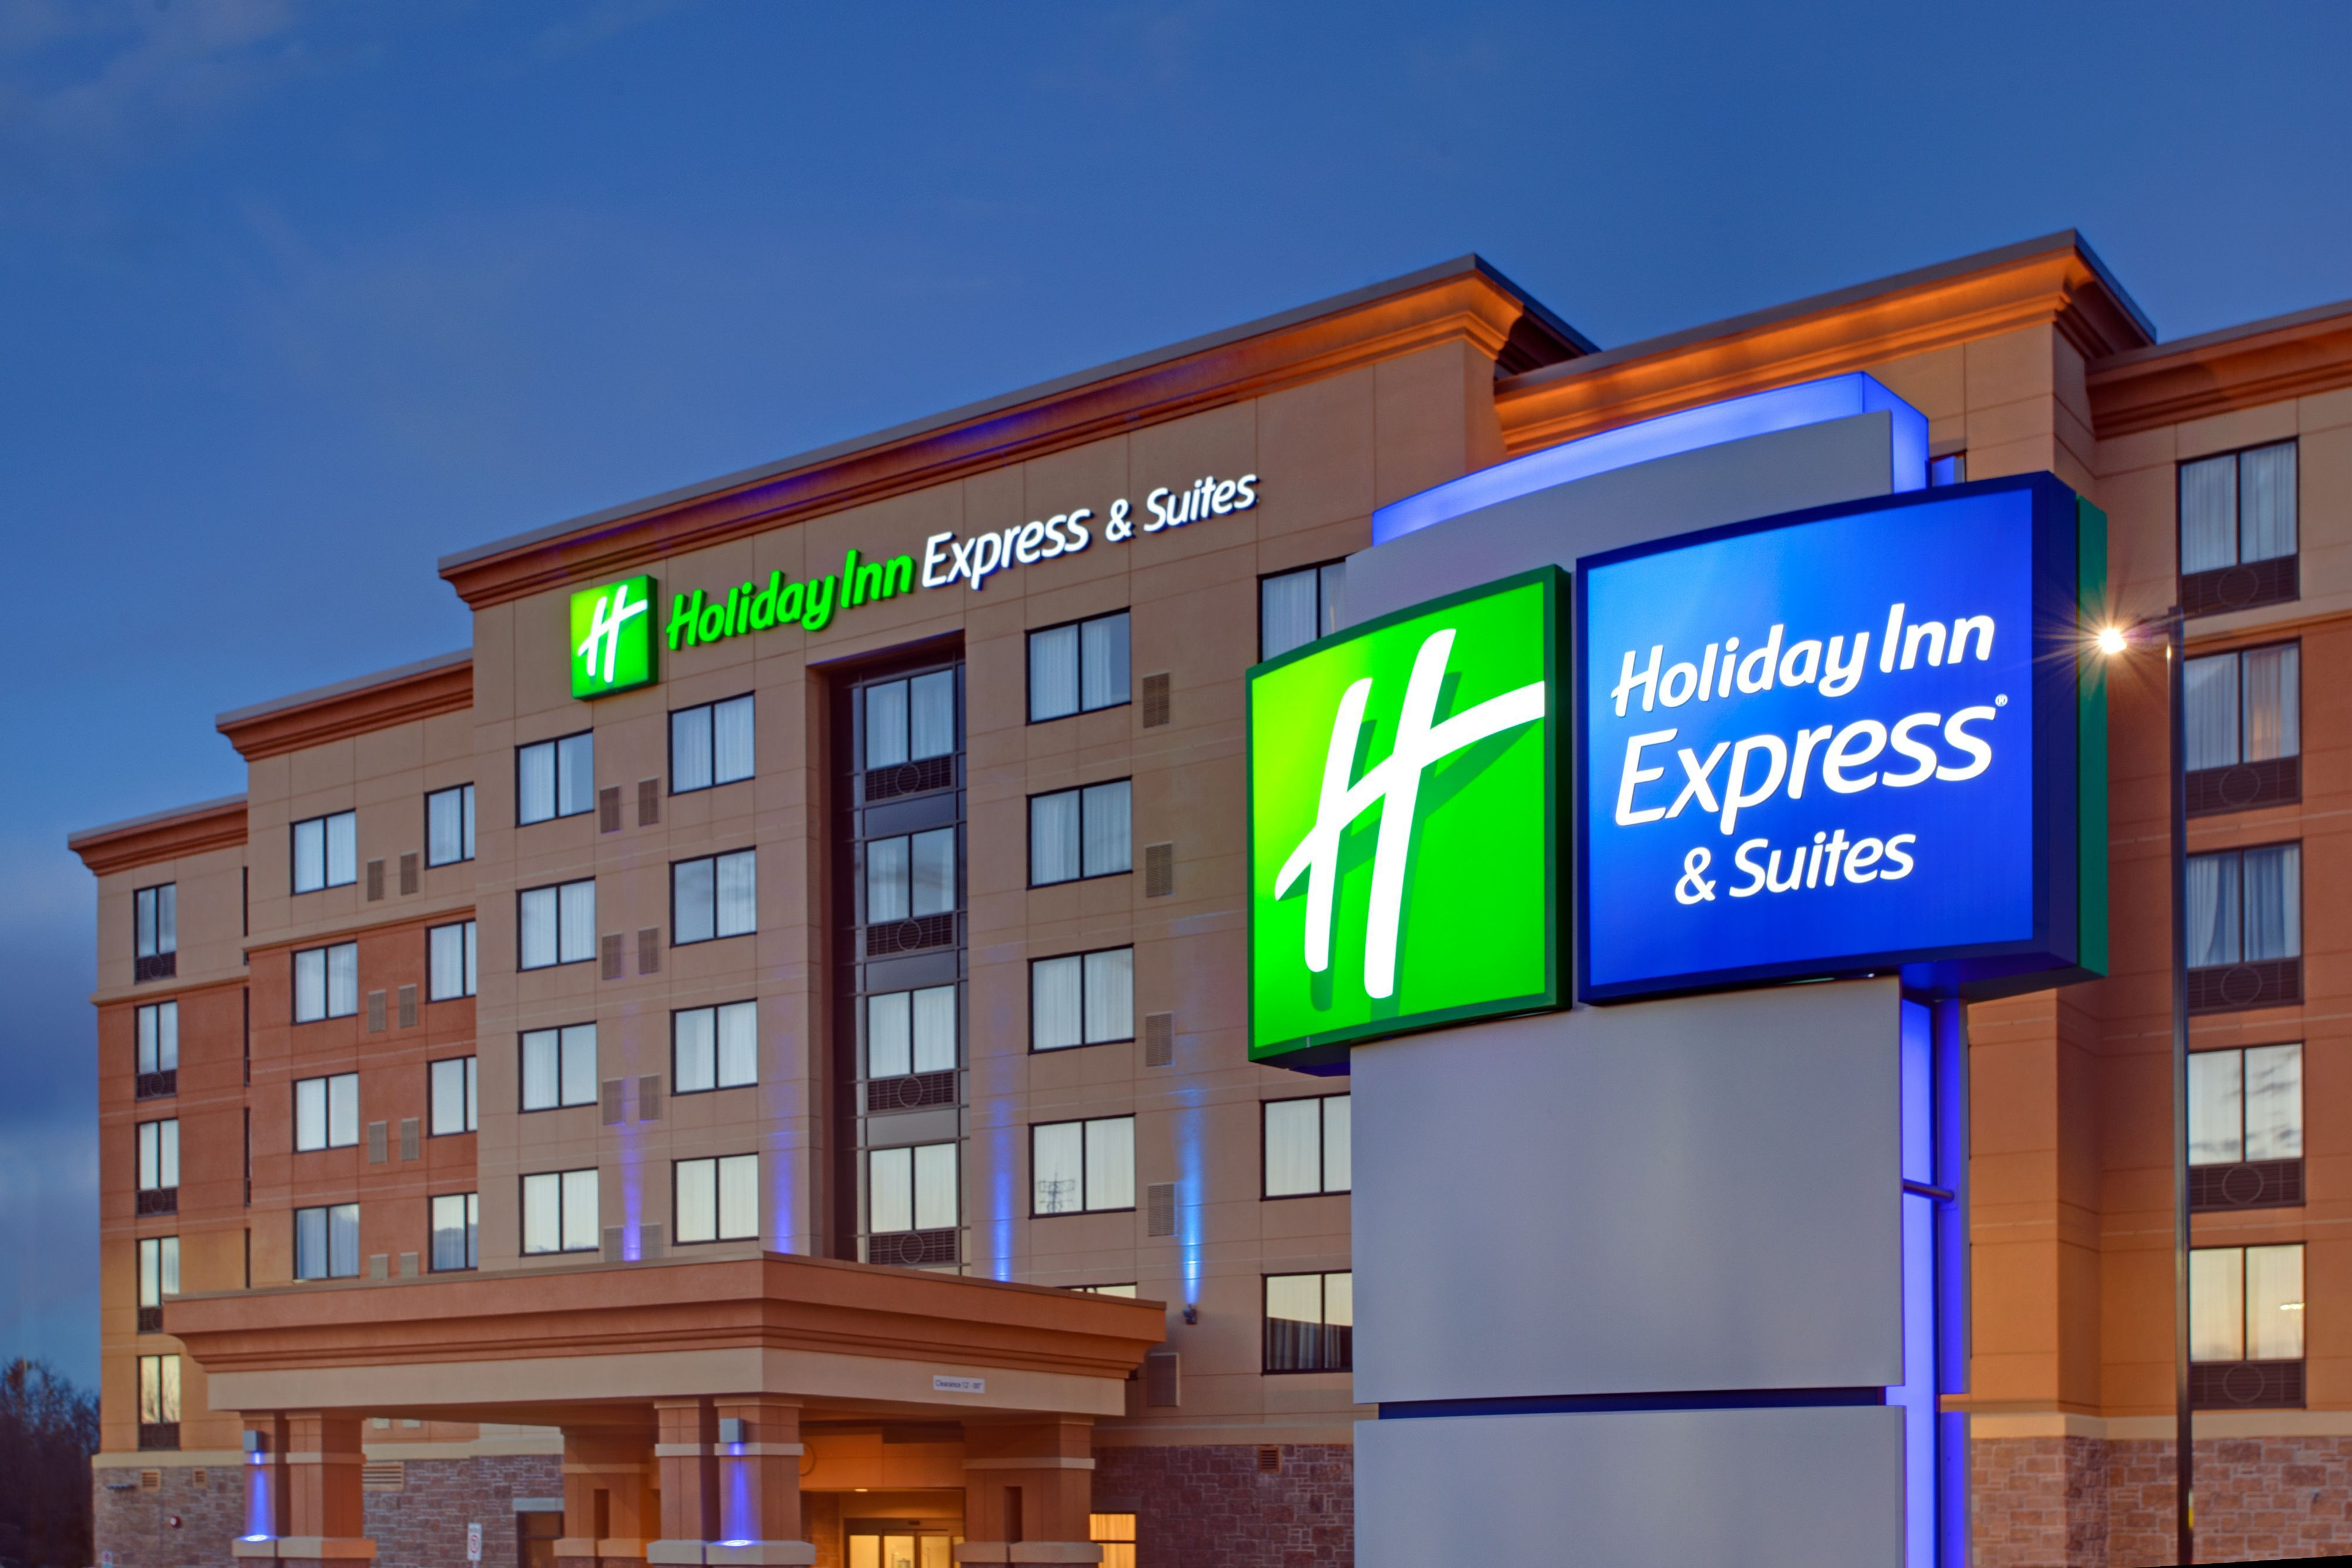 Holiday Inn Express Hotels Map